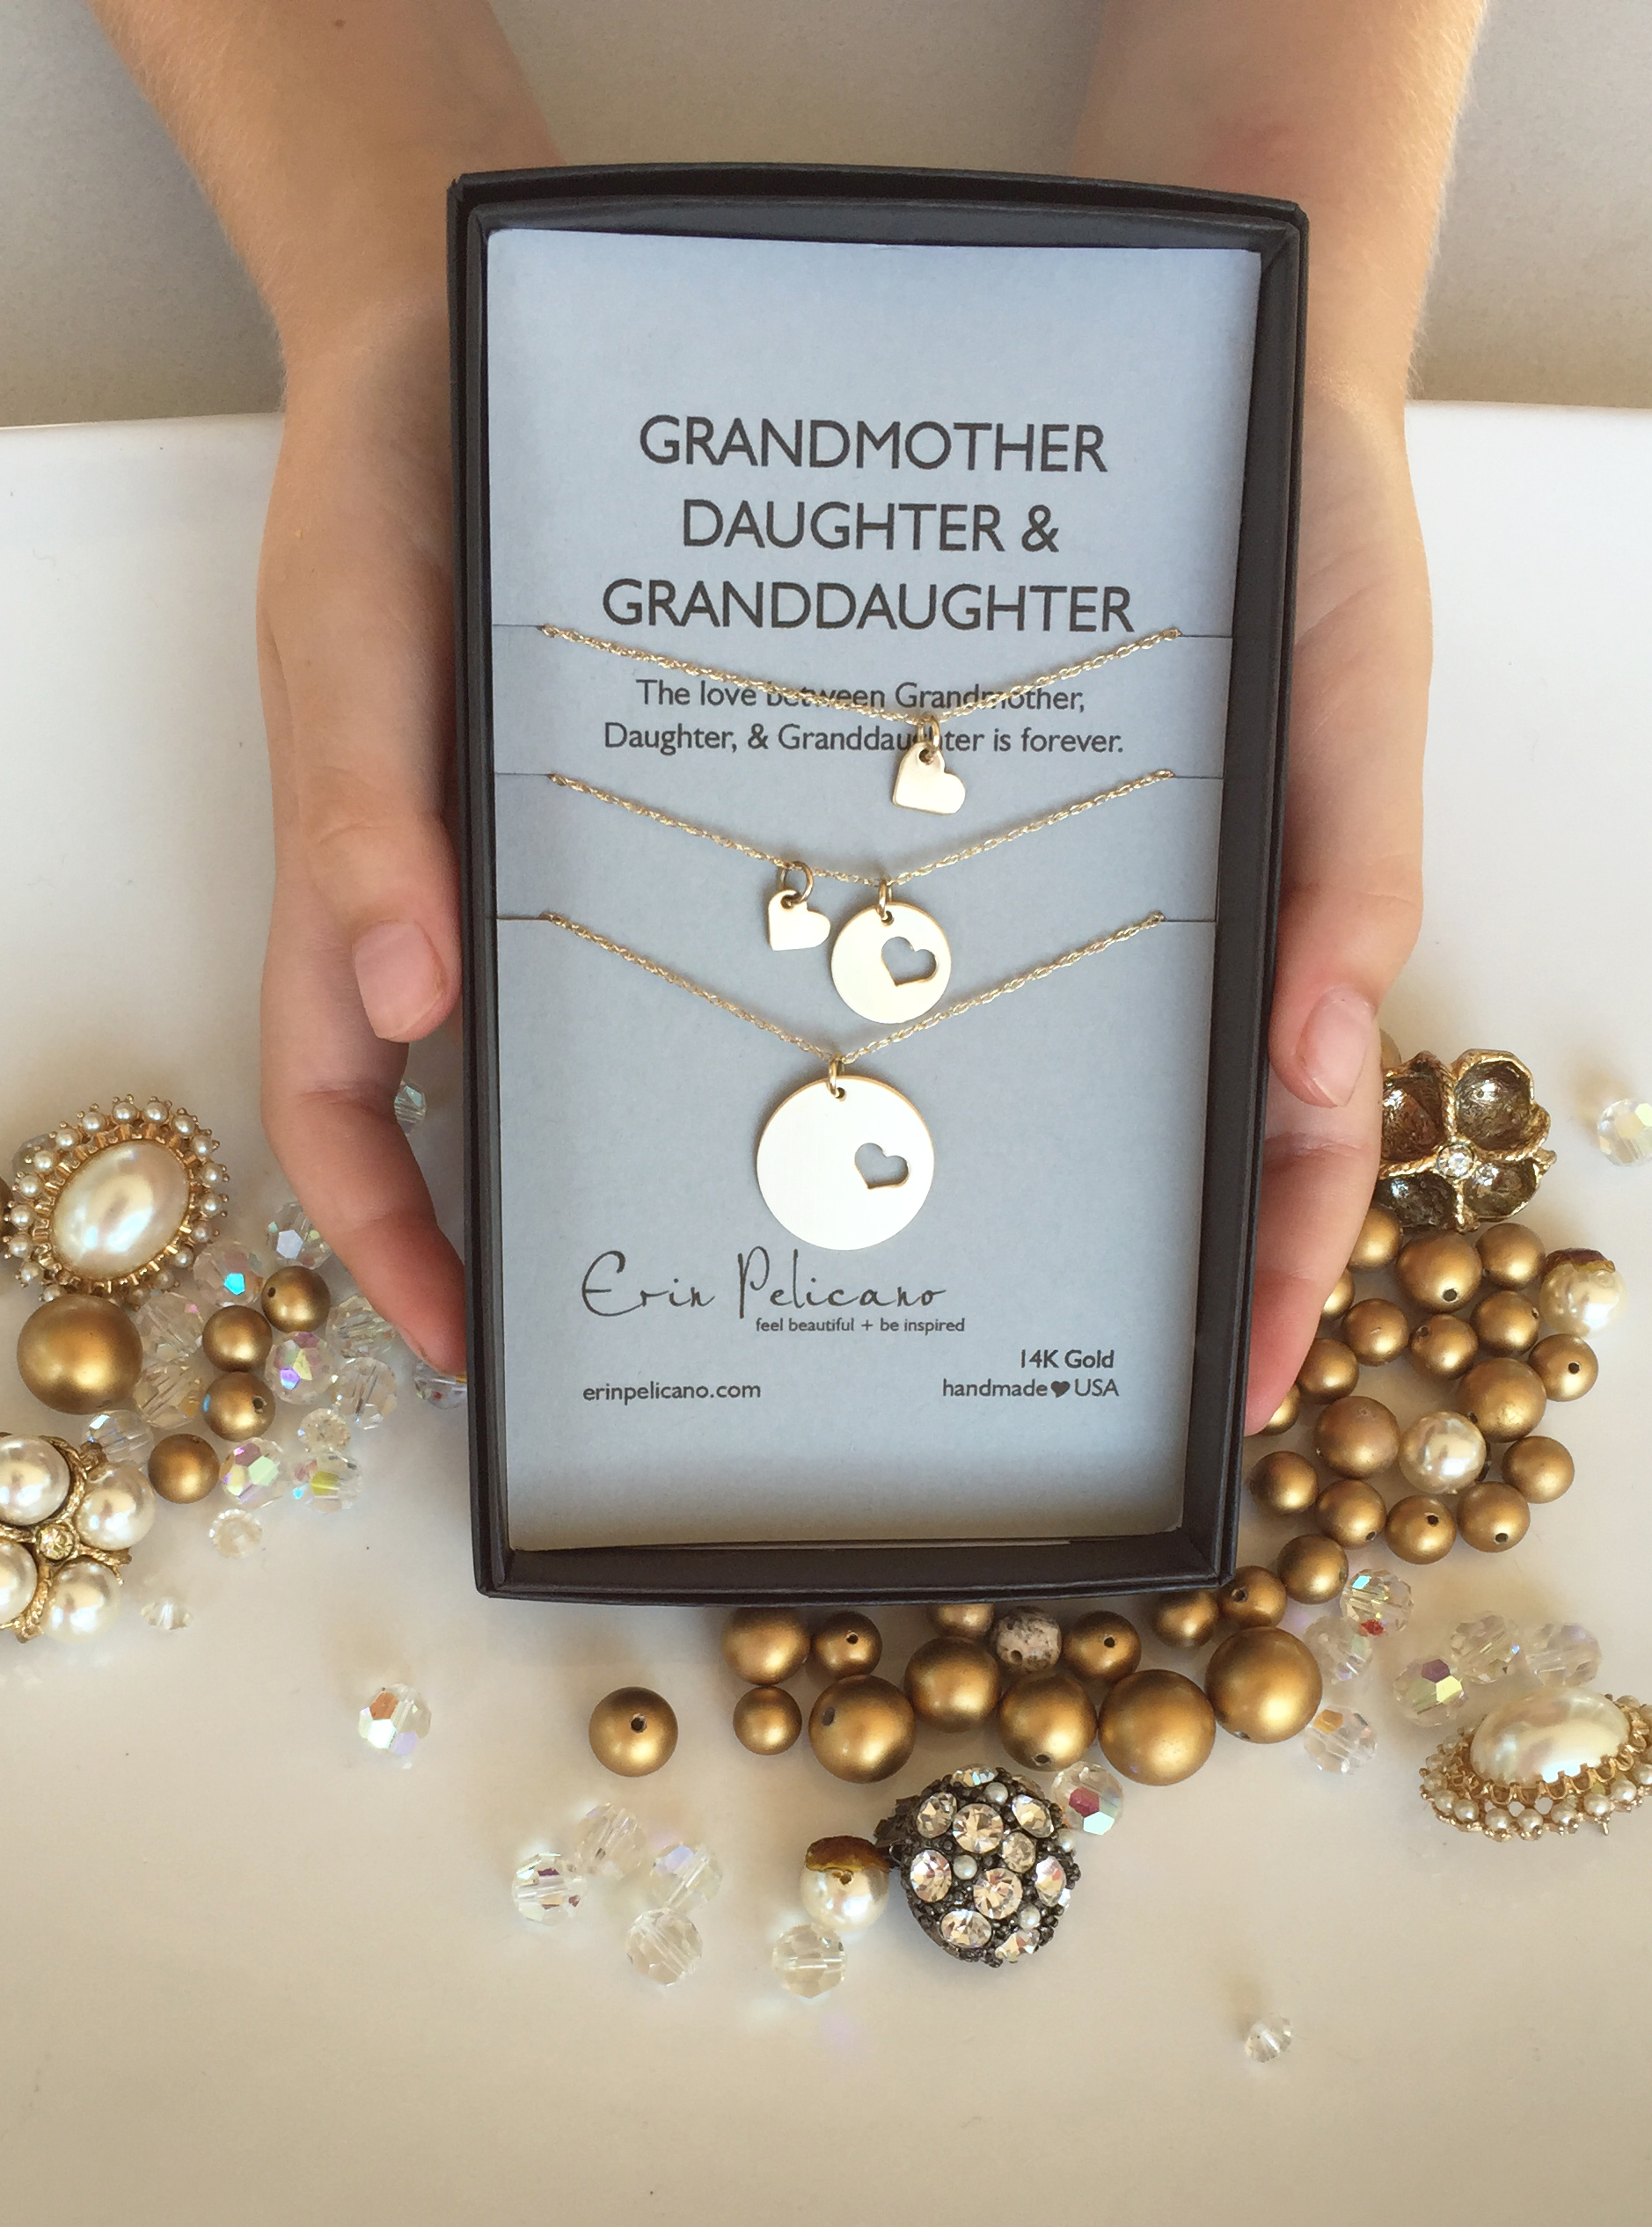 5 handmade grandmother mother and daughter necklaces erin pelicano 14k gold grandmother mother daughter necklaces aloadofball Images